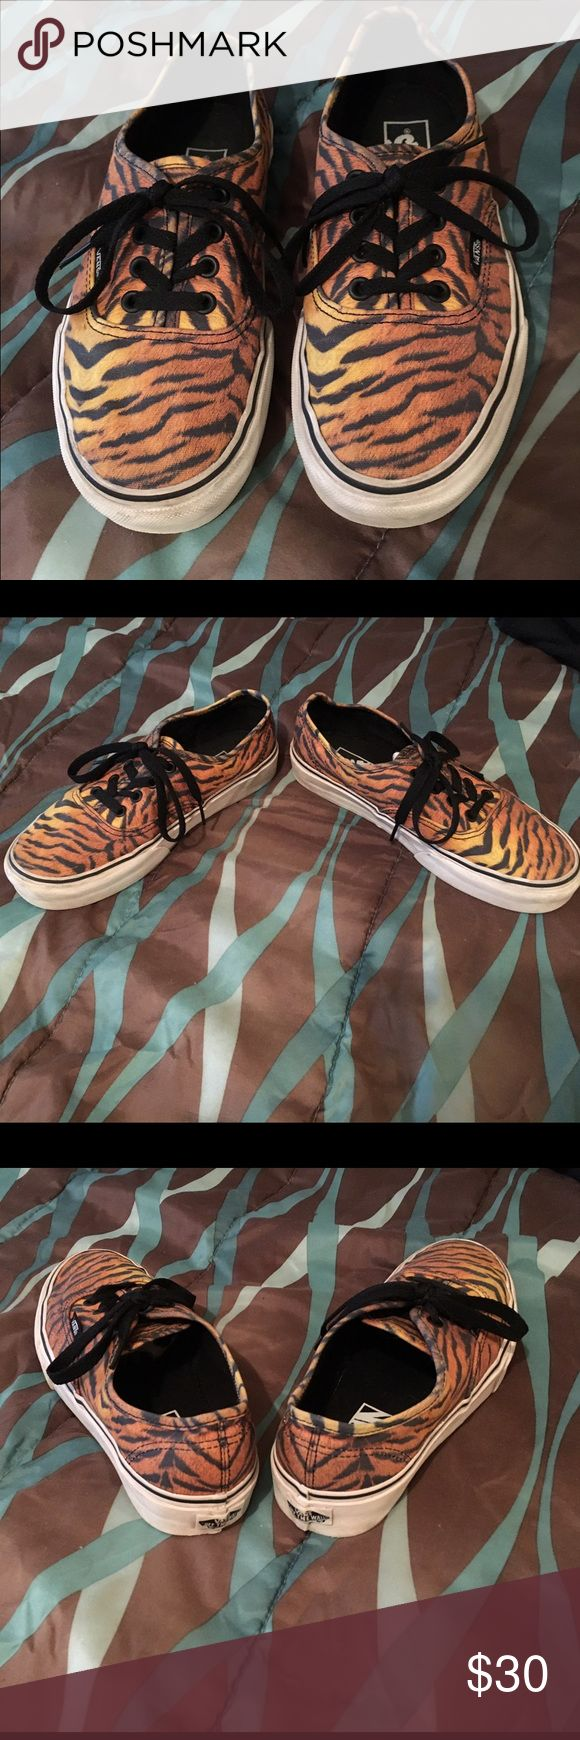 VANS shoes Super cute tiger print VANS! In perfect shape, worn only a couple of times! Love these shoes, but have no outfits that match, so gotta give them up! Can also be worn as size 6 for men! Vans Shoes